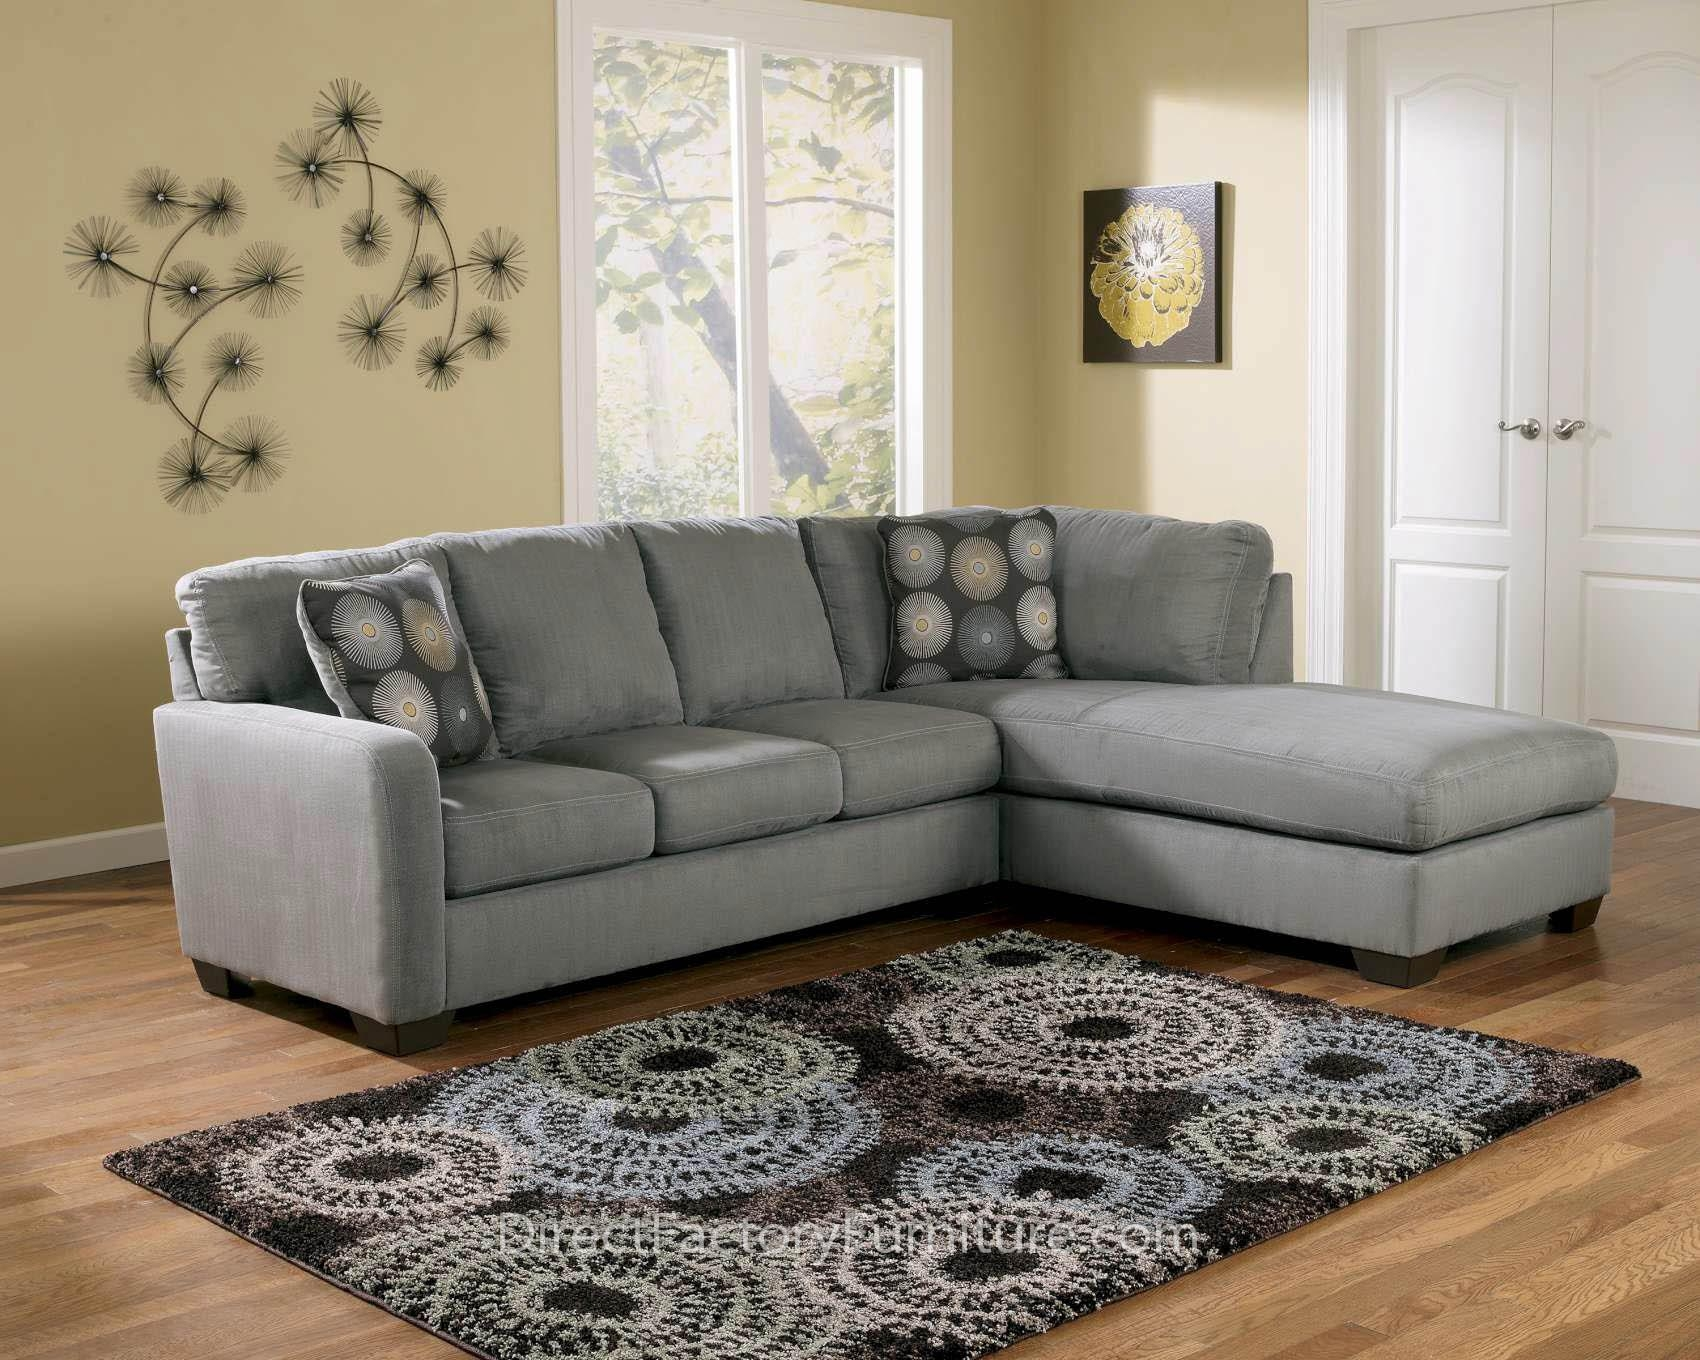 Media Room Sectional Sofas | Bjyoho With Media Room Sectional (View 2 of 20)